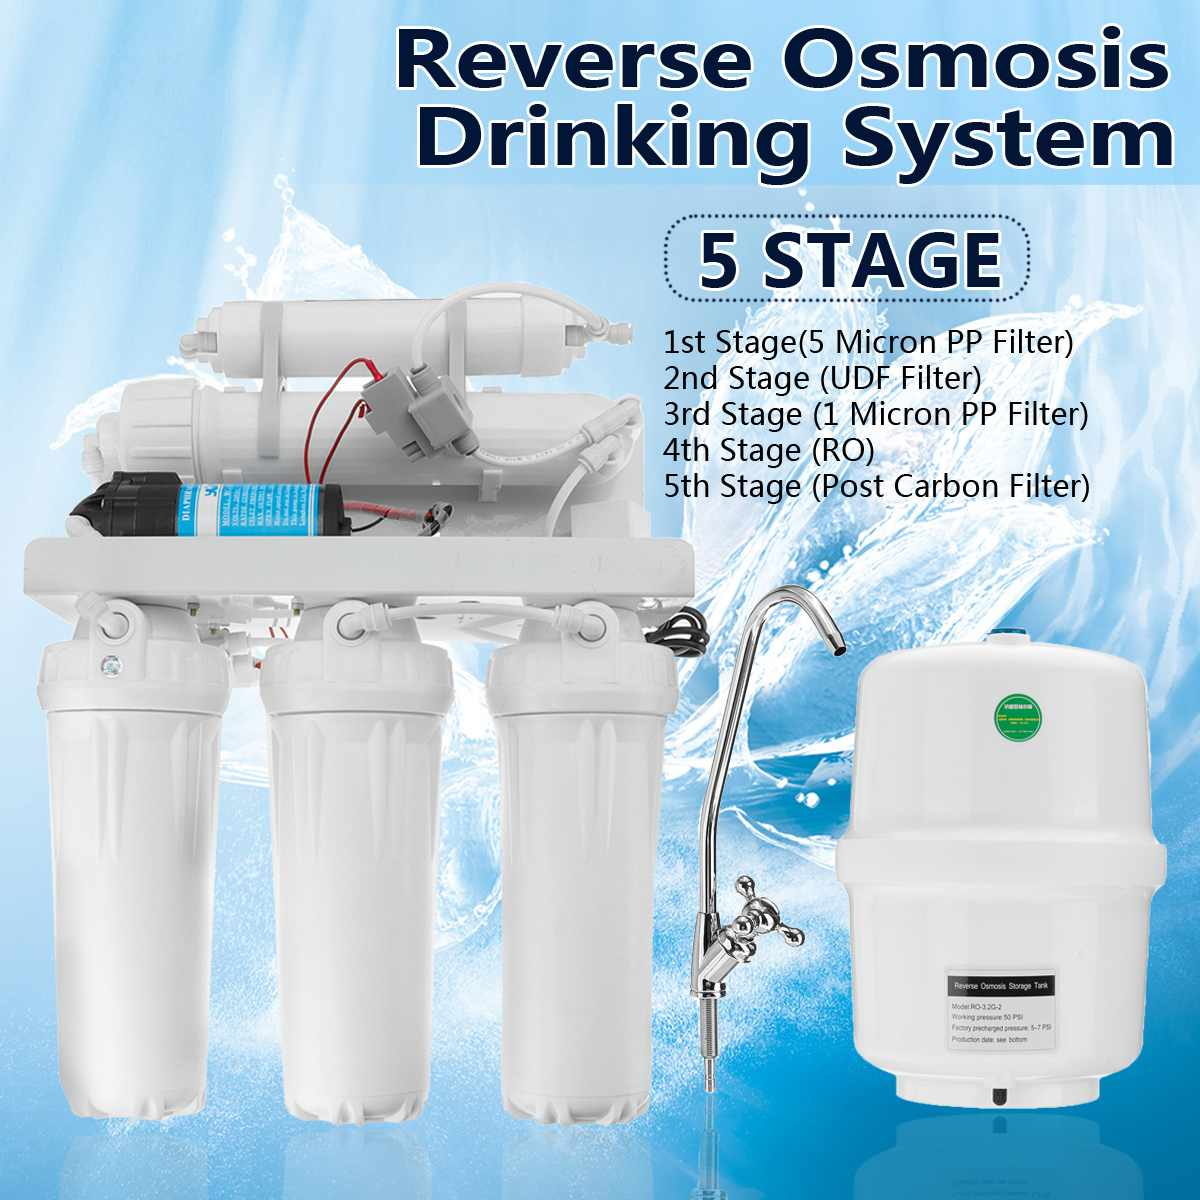 5 Stage RO Reverse Osmosis System Drinking Water Filter Kitchen Purifier Water Filters Membrane System Filtration With Faucet